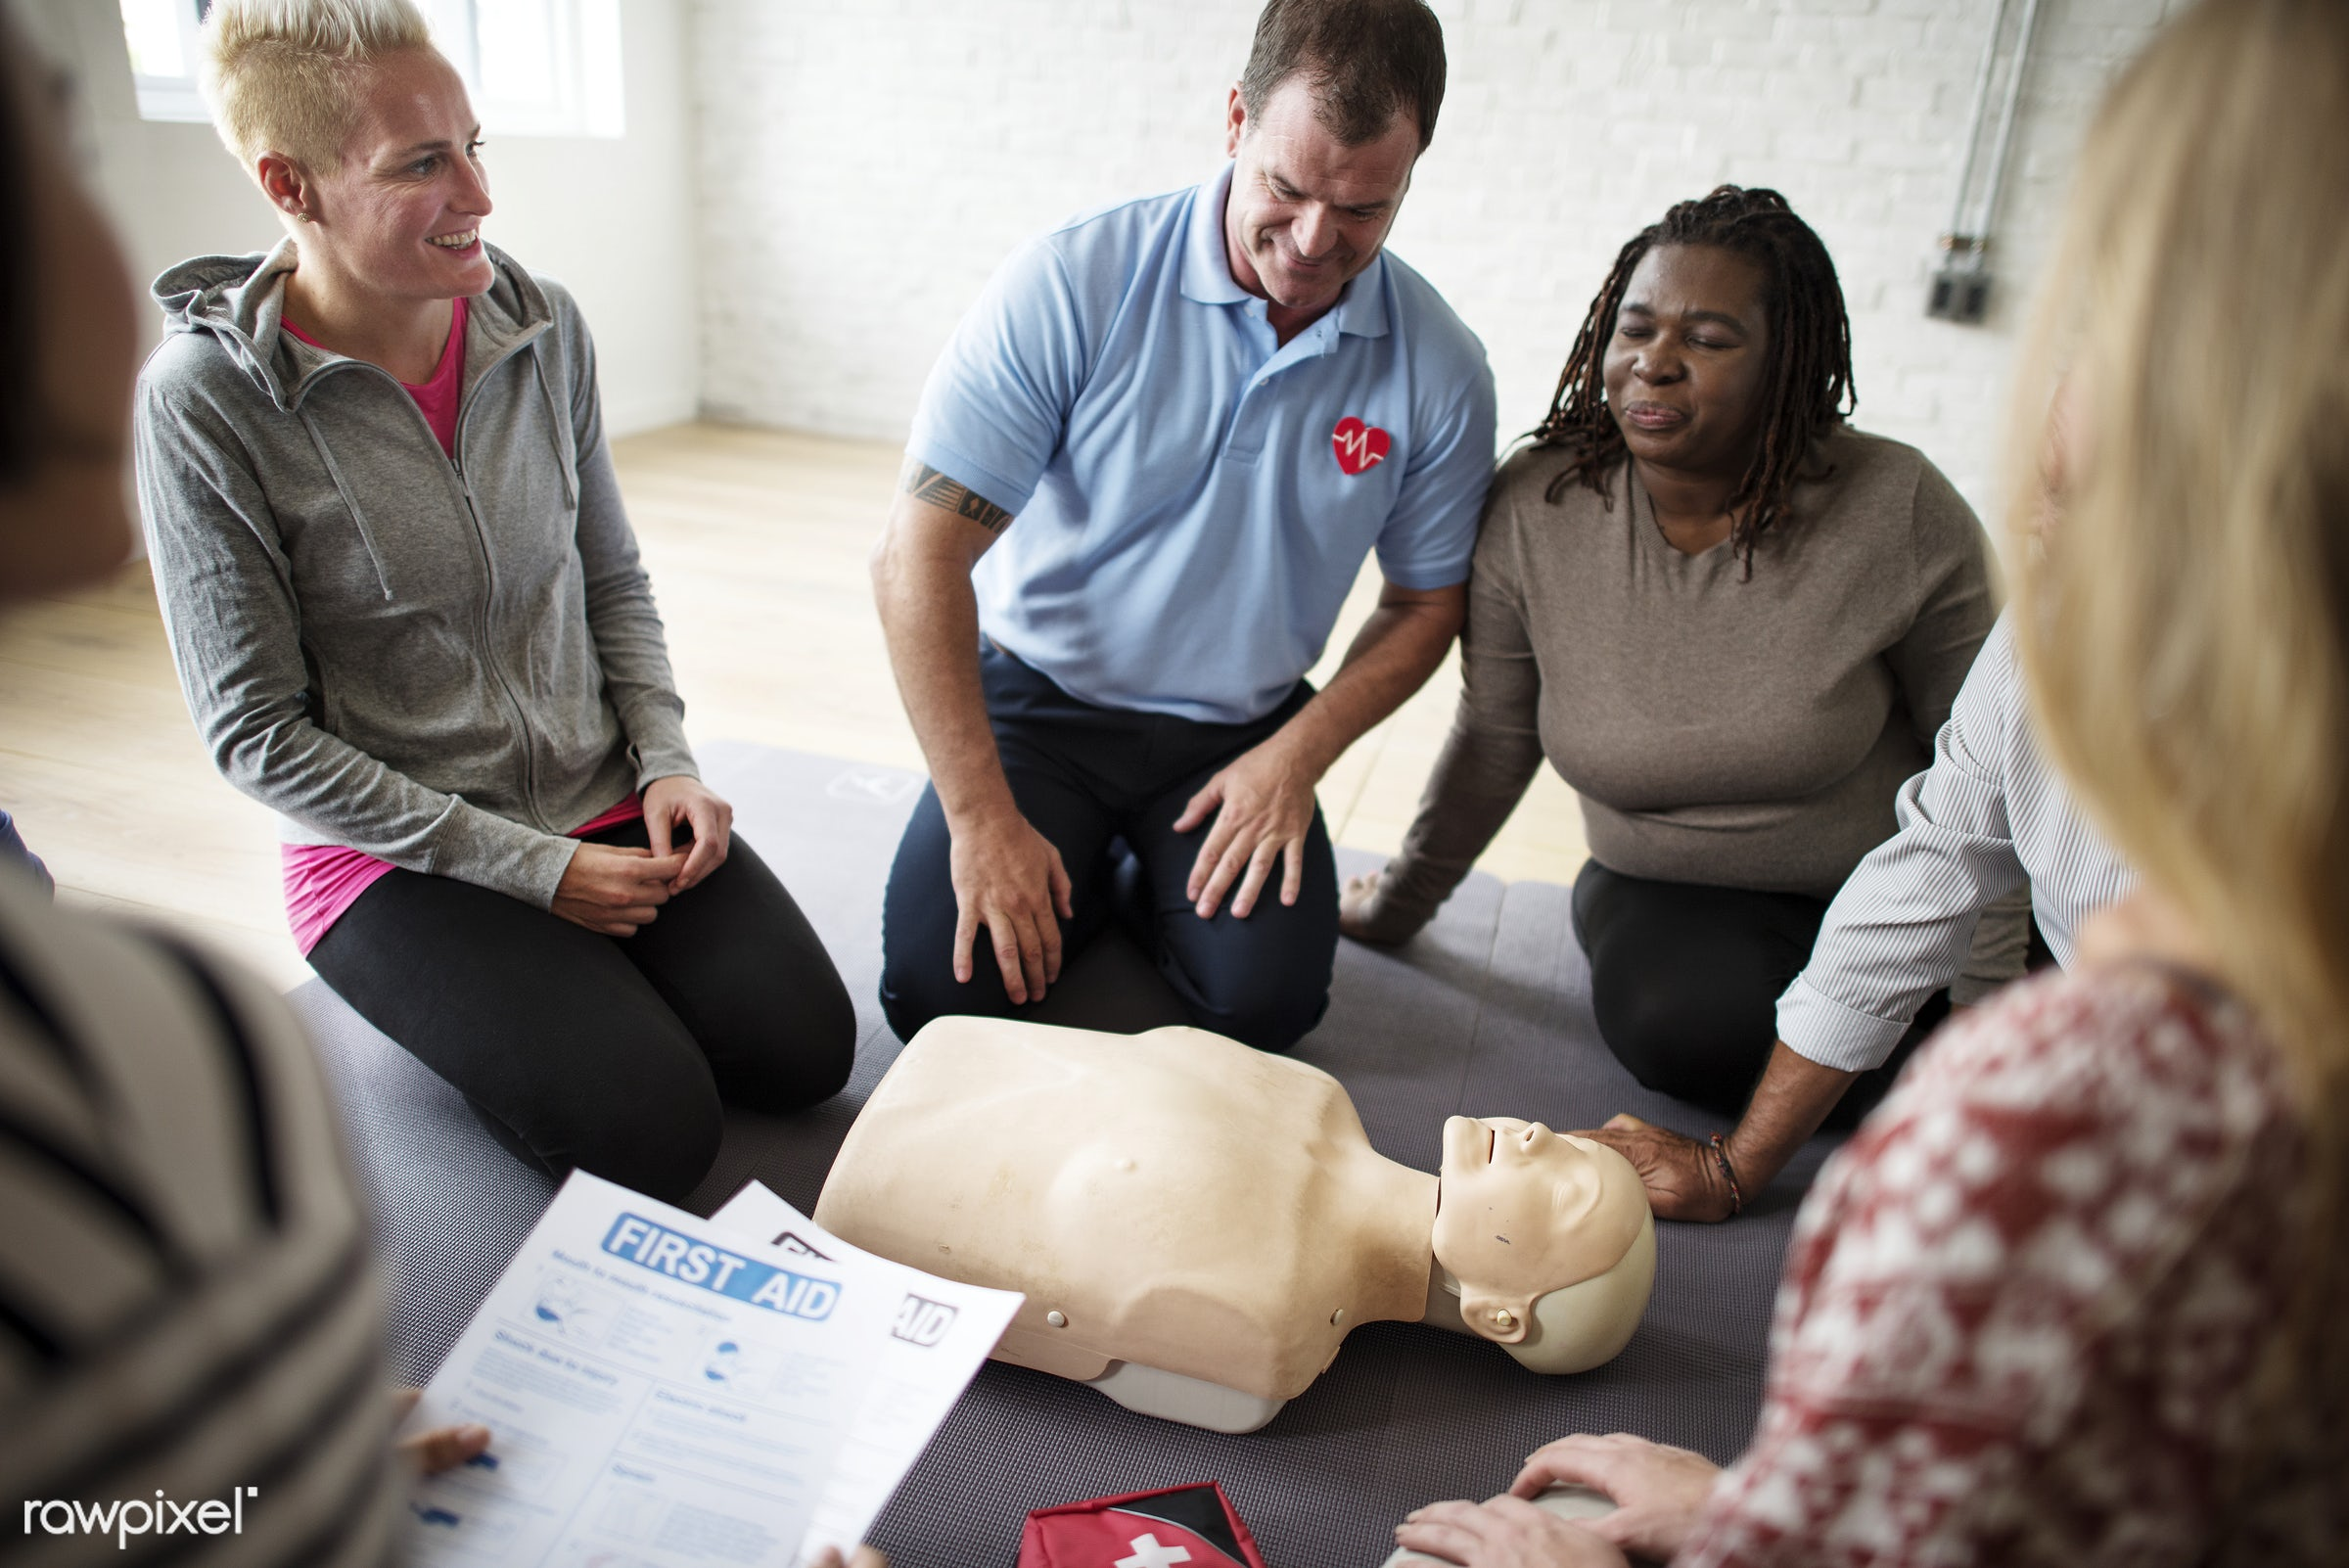 C - cpr training, person, knowledge, save, first aid, treatment, resuscitation, emergency, indoors, aid, people, emergency...